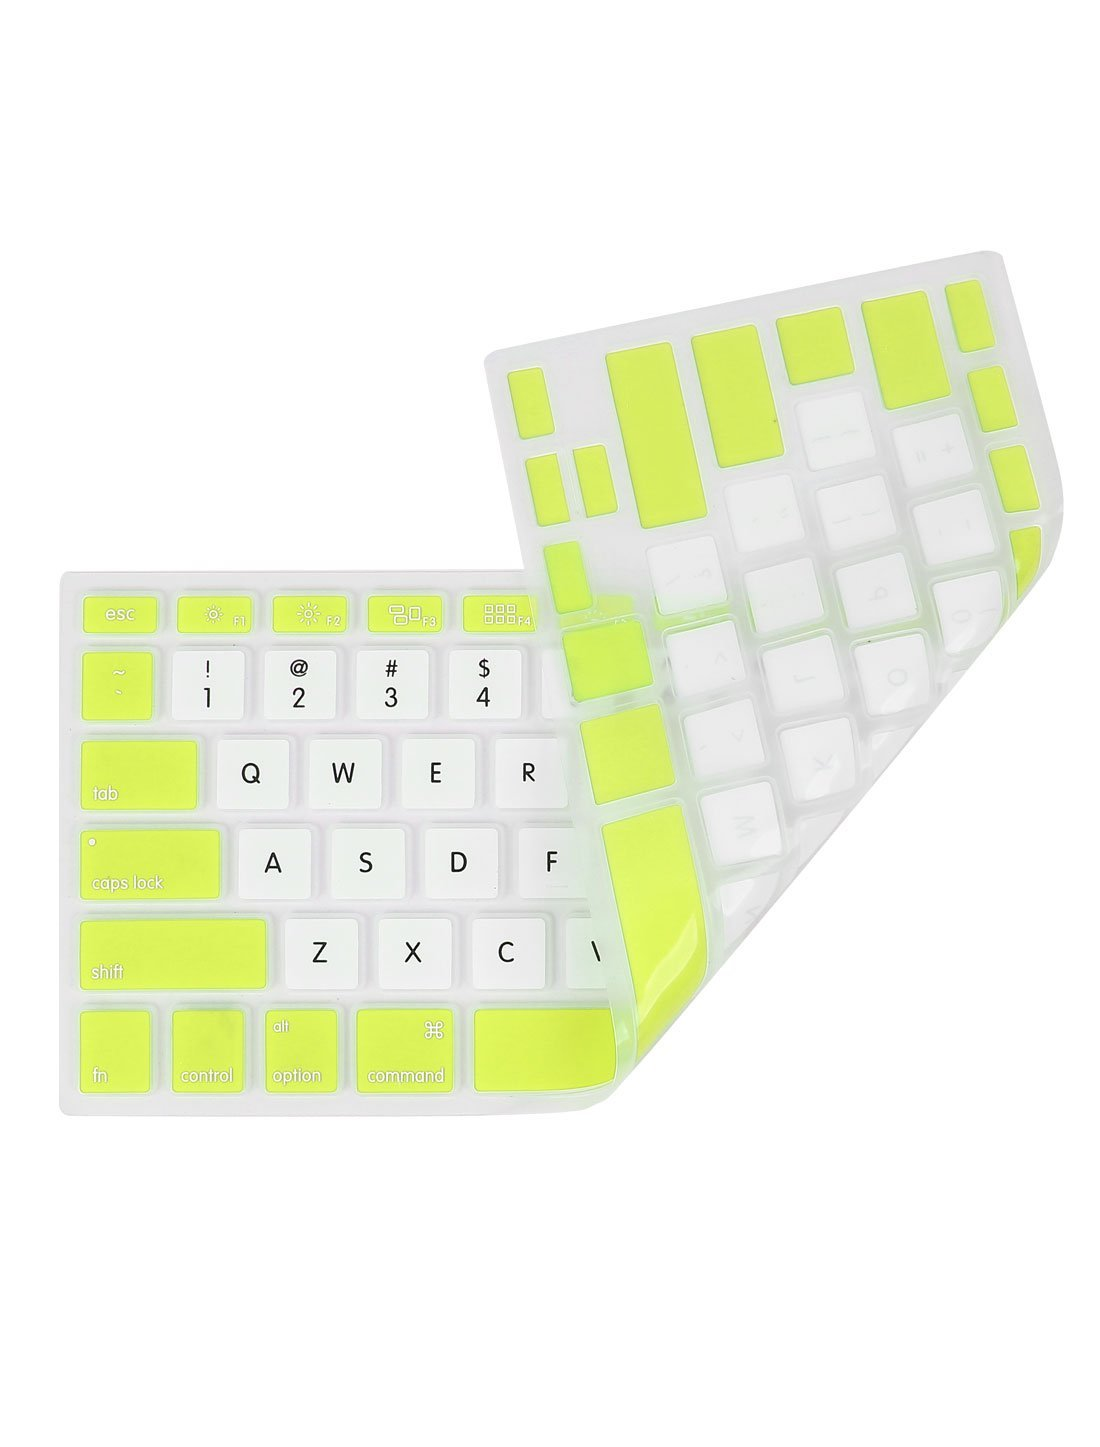 Amazon.com: eDealMax Teclado Blanco Verde de la cubierta protectora de la piel Para Apple MacBook Air 13,3: Electronics